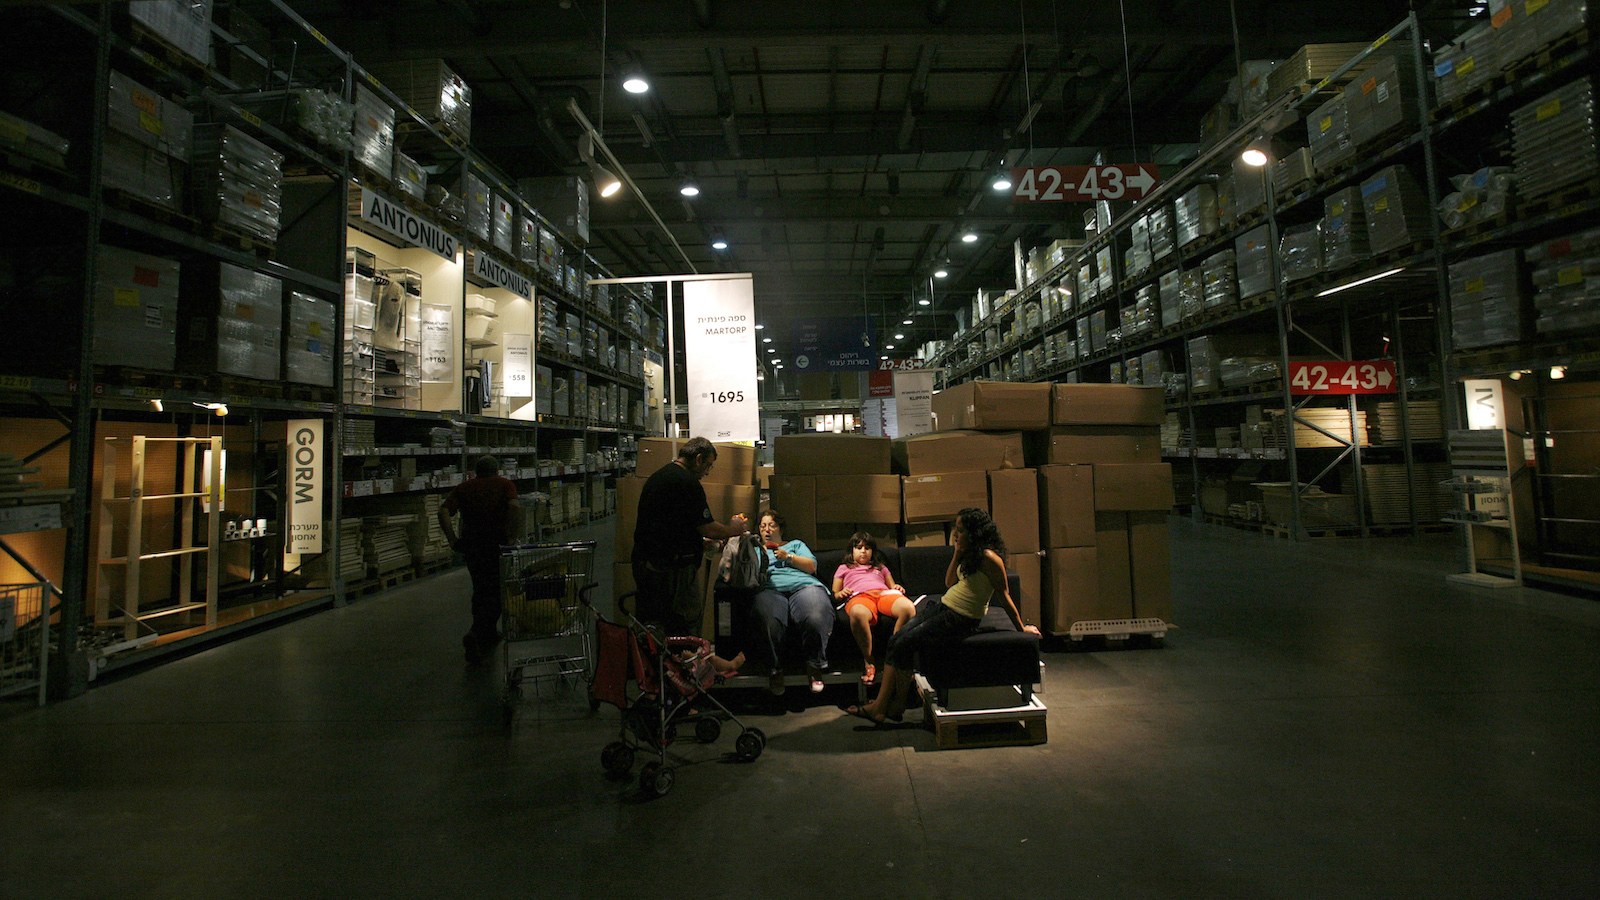 Shoppers rest in a branch of the Swedish retail store IKEA in the Israeli city of Netanya, north of Tel Aviv August 24, 2009. According to Israeli media reports, thousands of Israelis have signed a petition to boycott the retailer amid a row with Sweden over a Swedish newspaper which repeated Palestinian accusations dating from the early 1990s that Israeli troops took organs from men who died in custody. A spokesperson for IKEA said on Monday that they are a commercial non-political organization that has and will continue to have an excellent relationship with Israeli consumers.  REUTERS/Ronen Zvulun (ISRAEL POLITICS BUSINESS) - RTR272JI